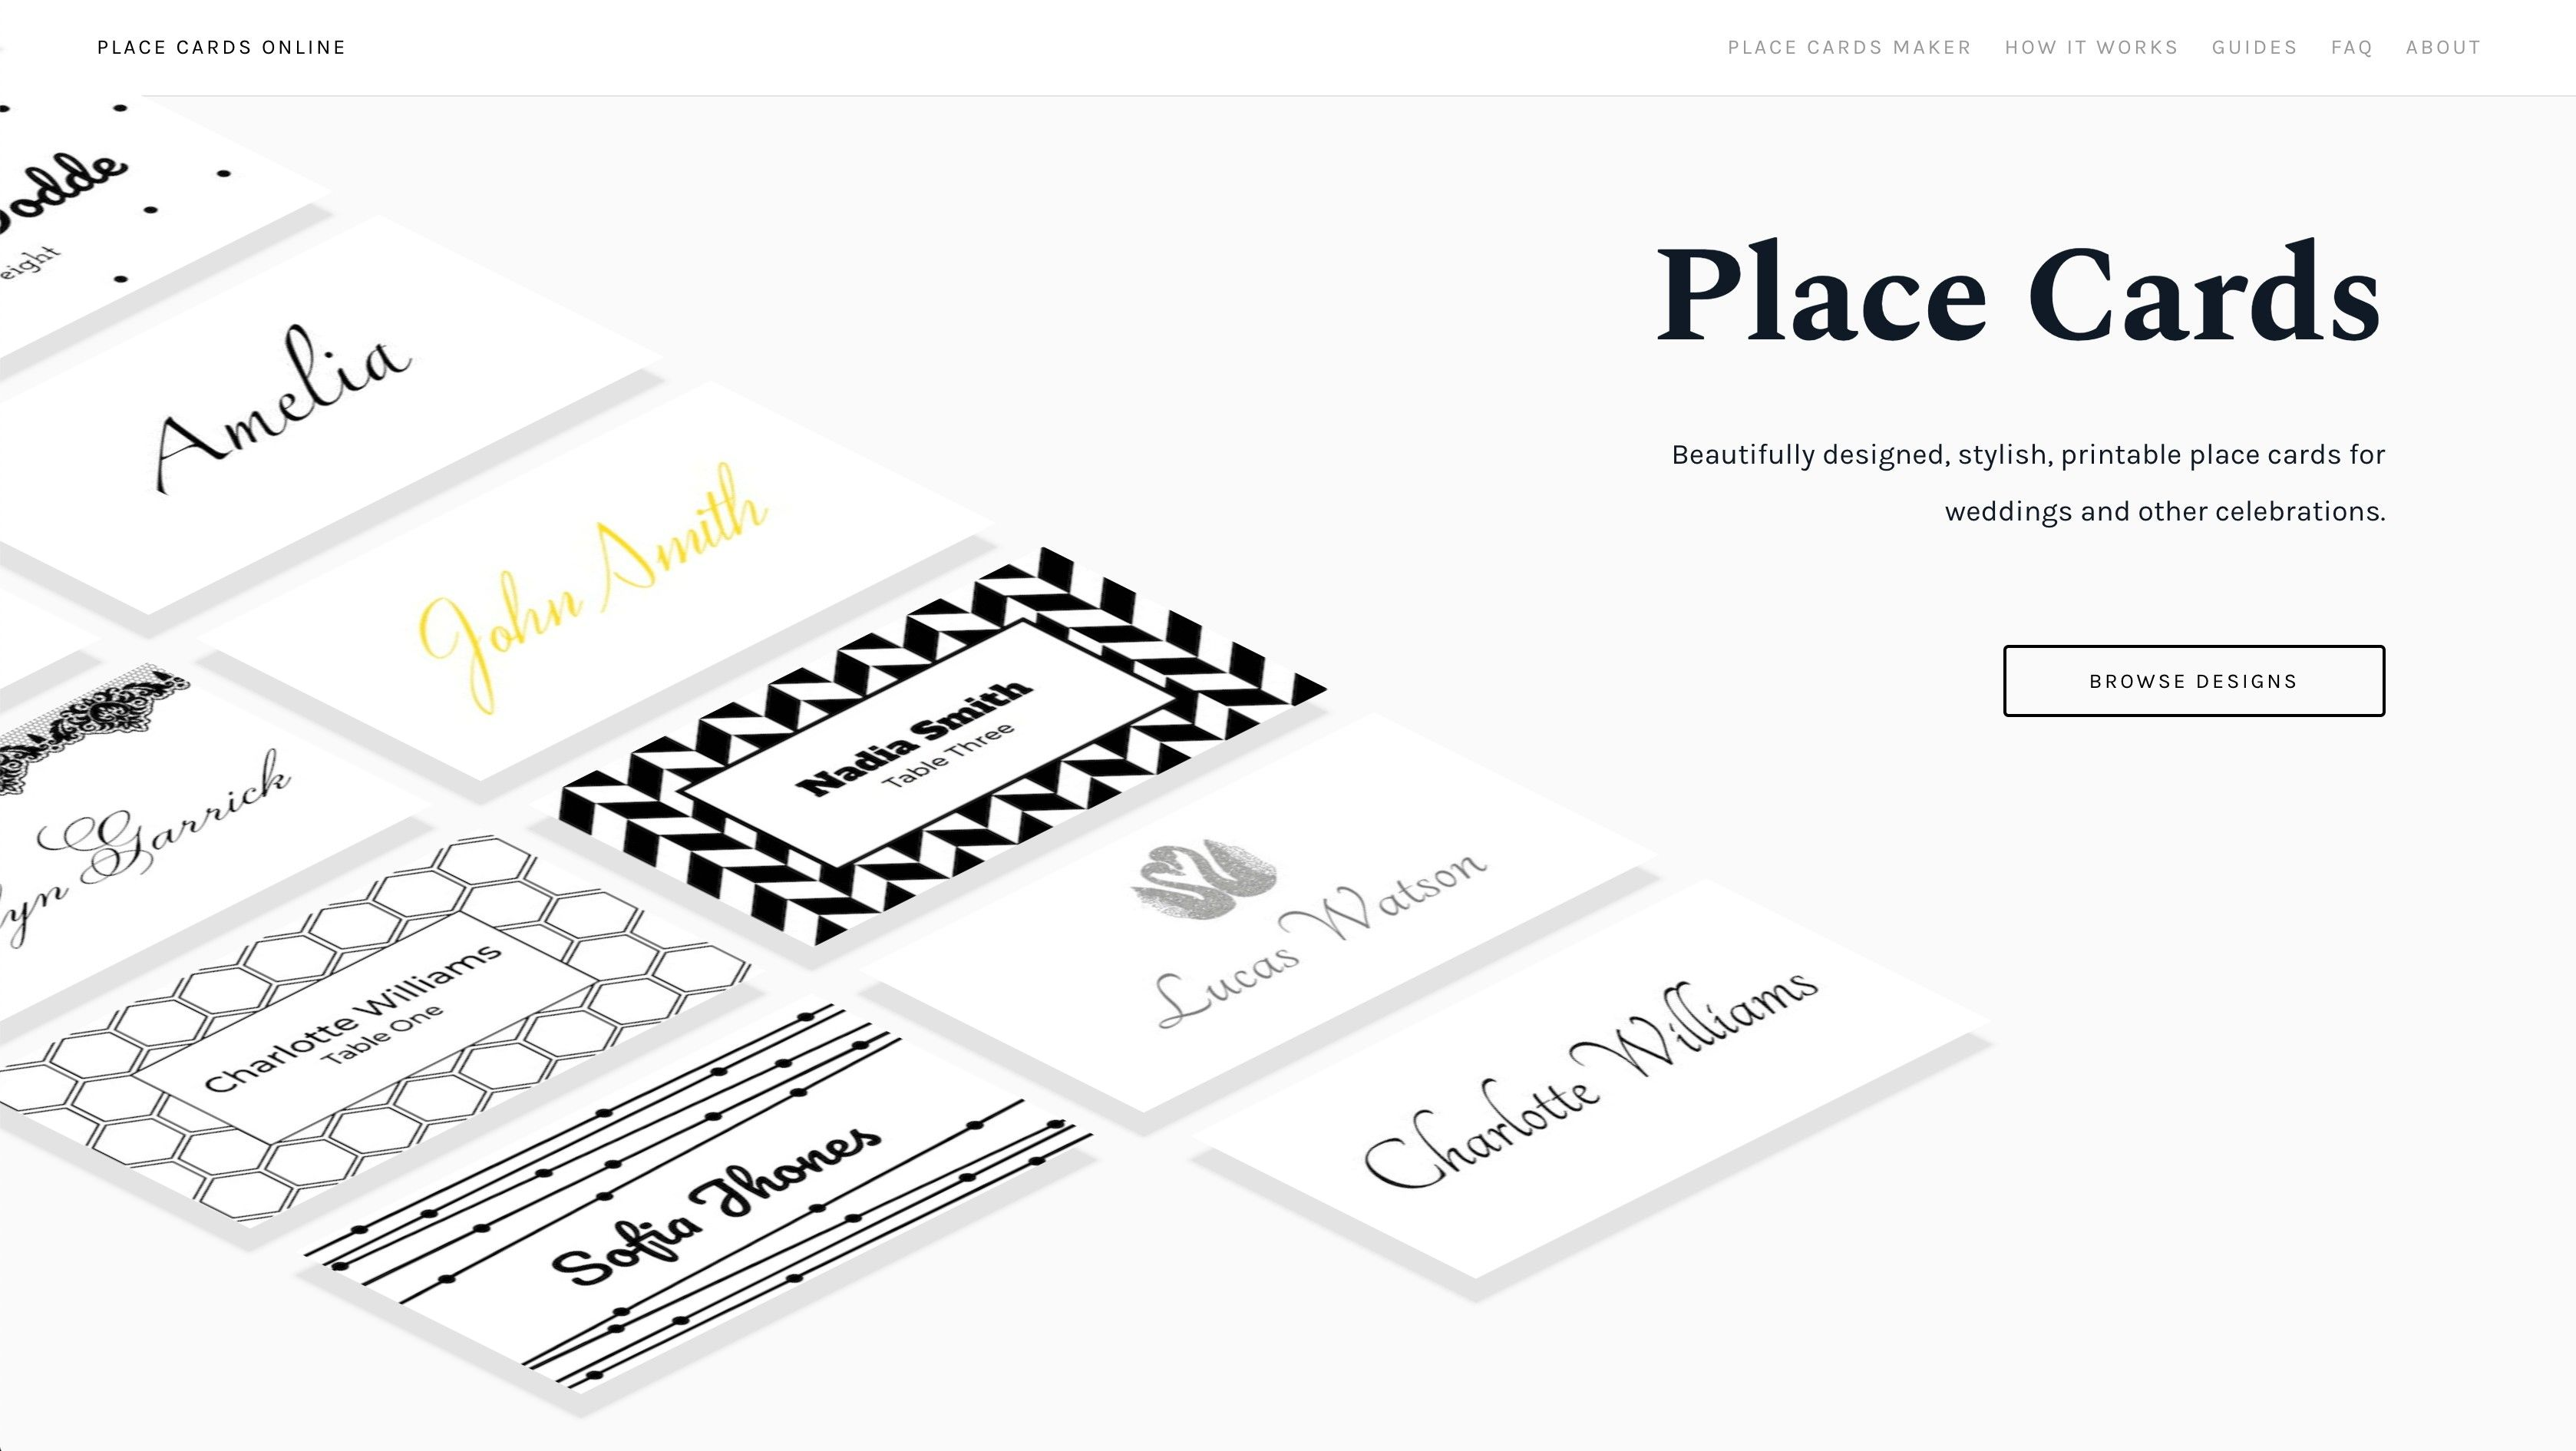 Place Cards Online Place Cards Maker Beautifully Designed Inside Celebrate It Te Printable Place Cards Templates Printable Place Cards Trading Card Template